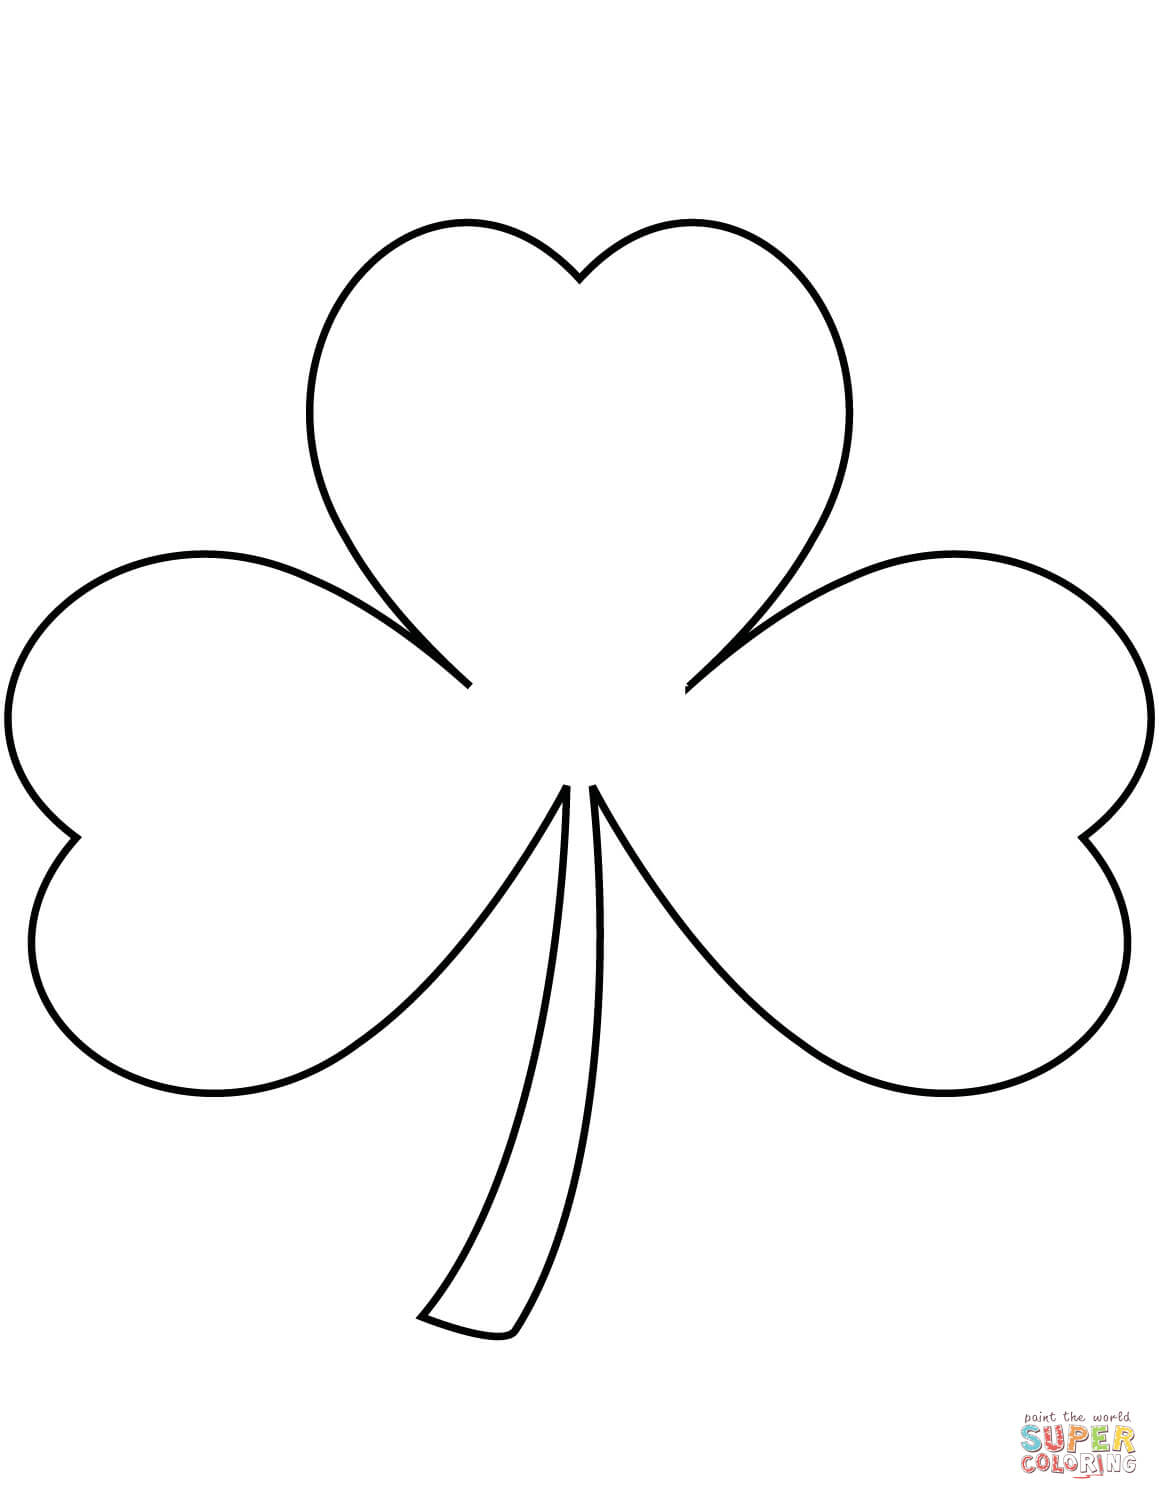 Shamrock Coloring Page | Free Printable Coloring Pages - Shamrock Template Free Printable